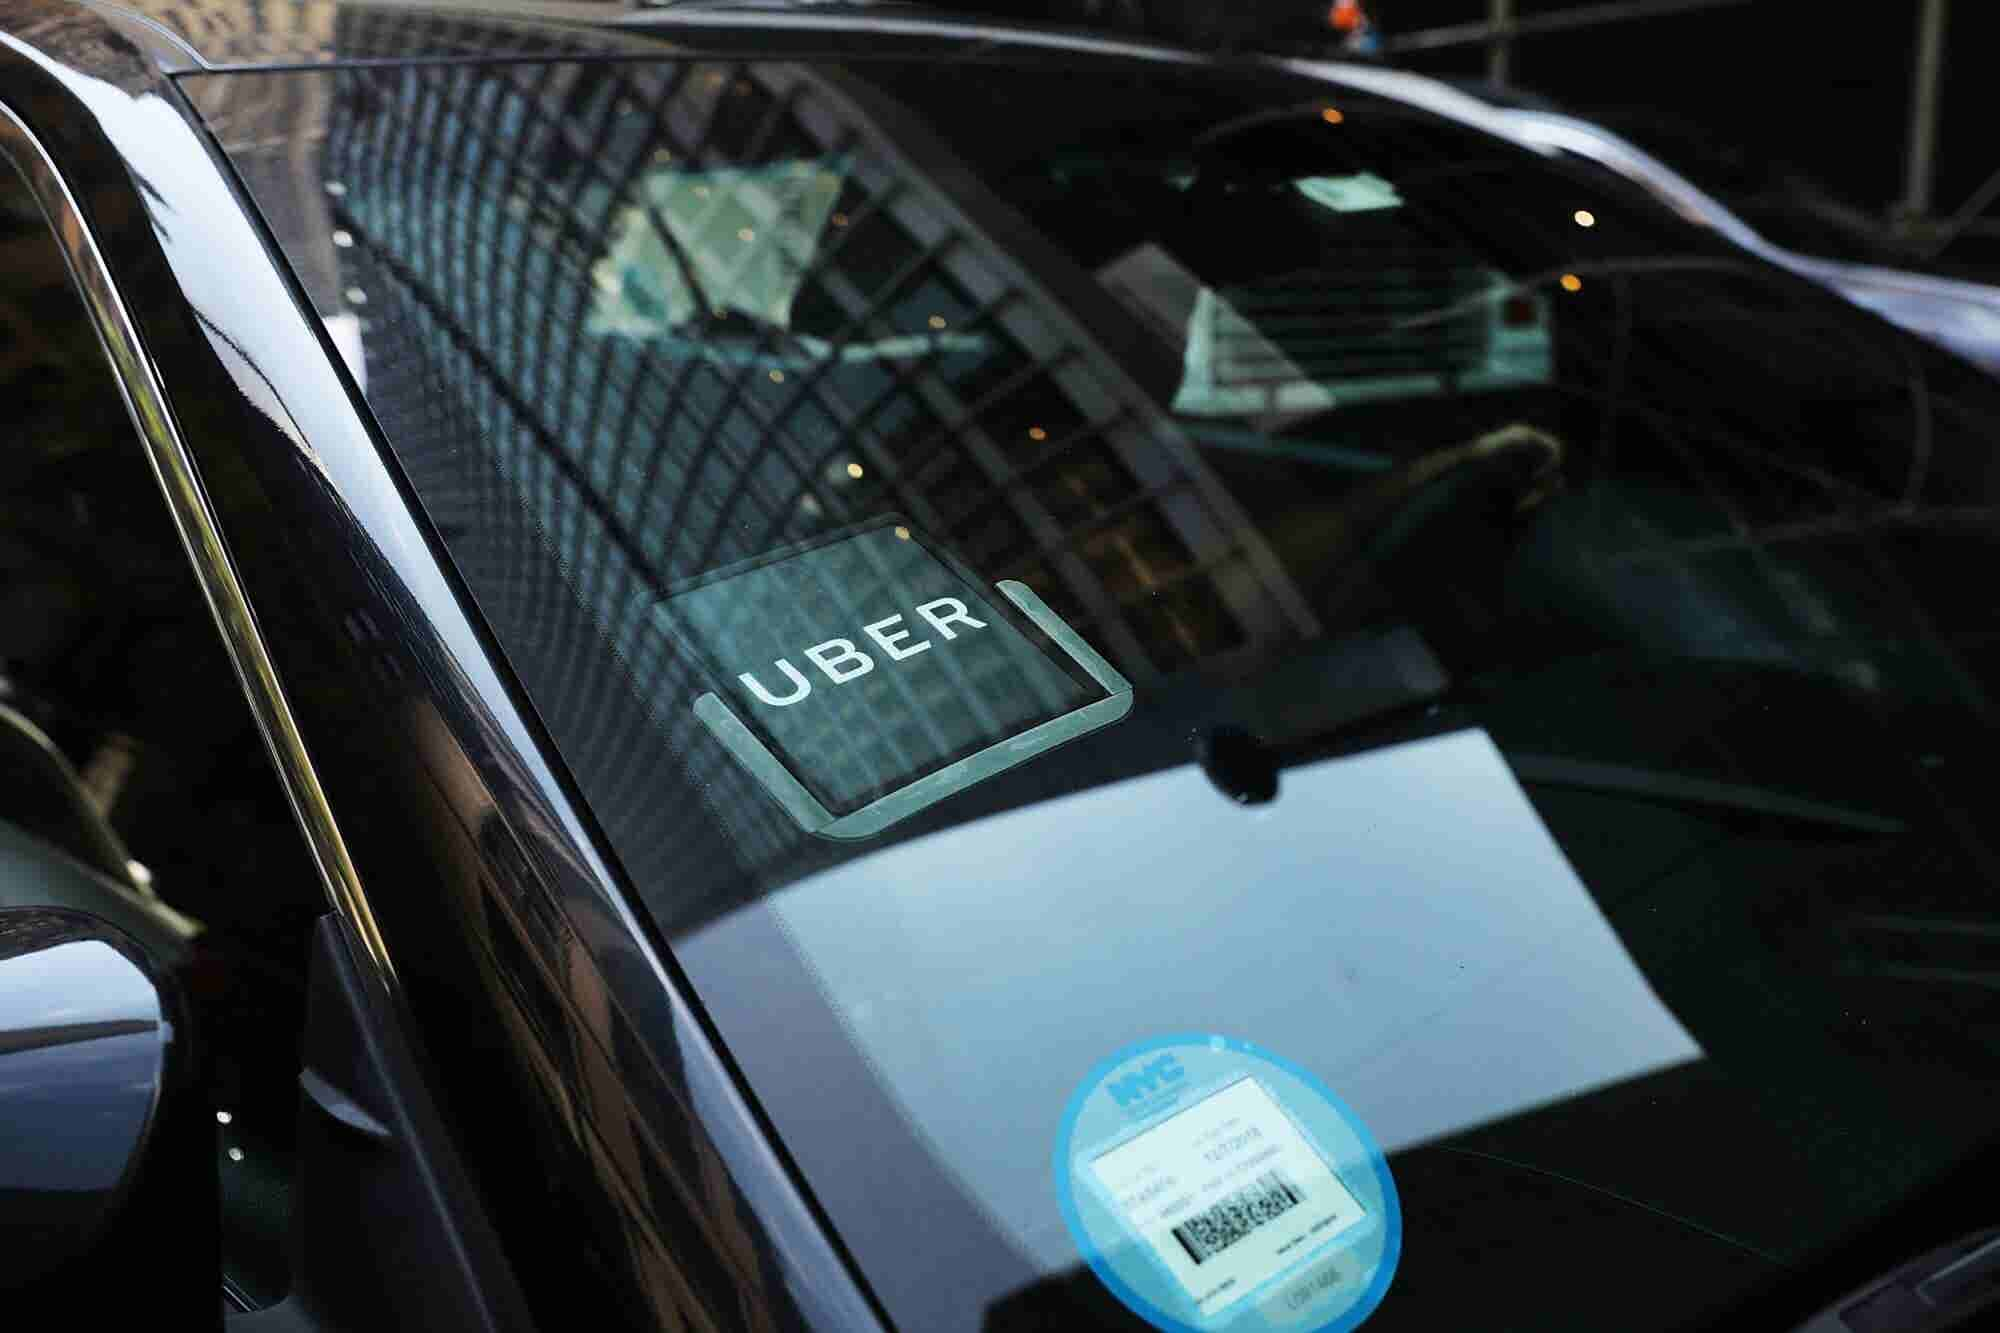 New York City Deals a Blow to Uber and the SEC Investigates Tesla: 3 Things to Know